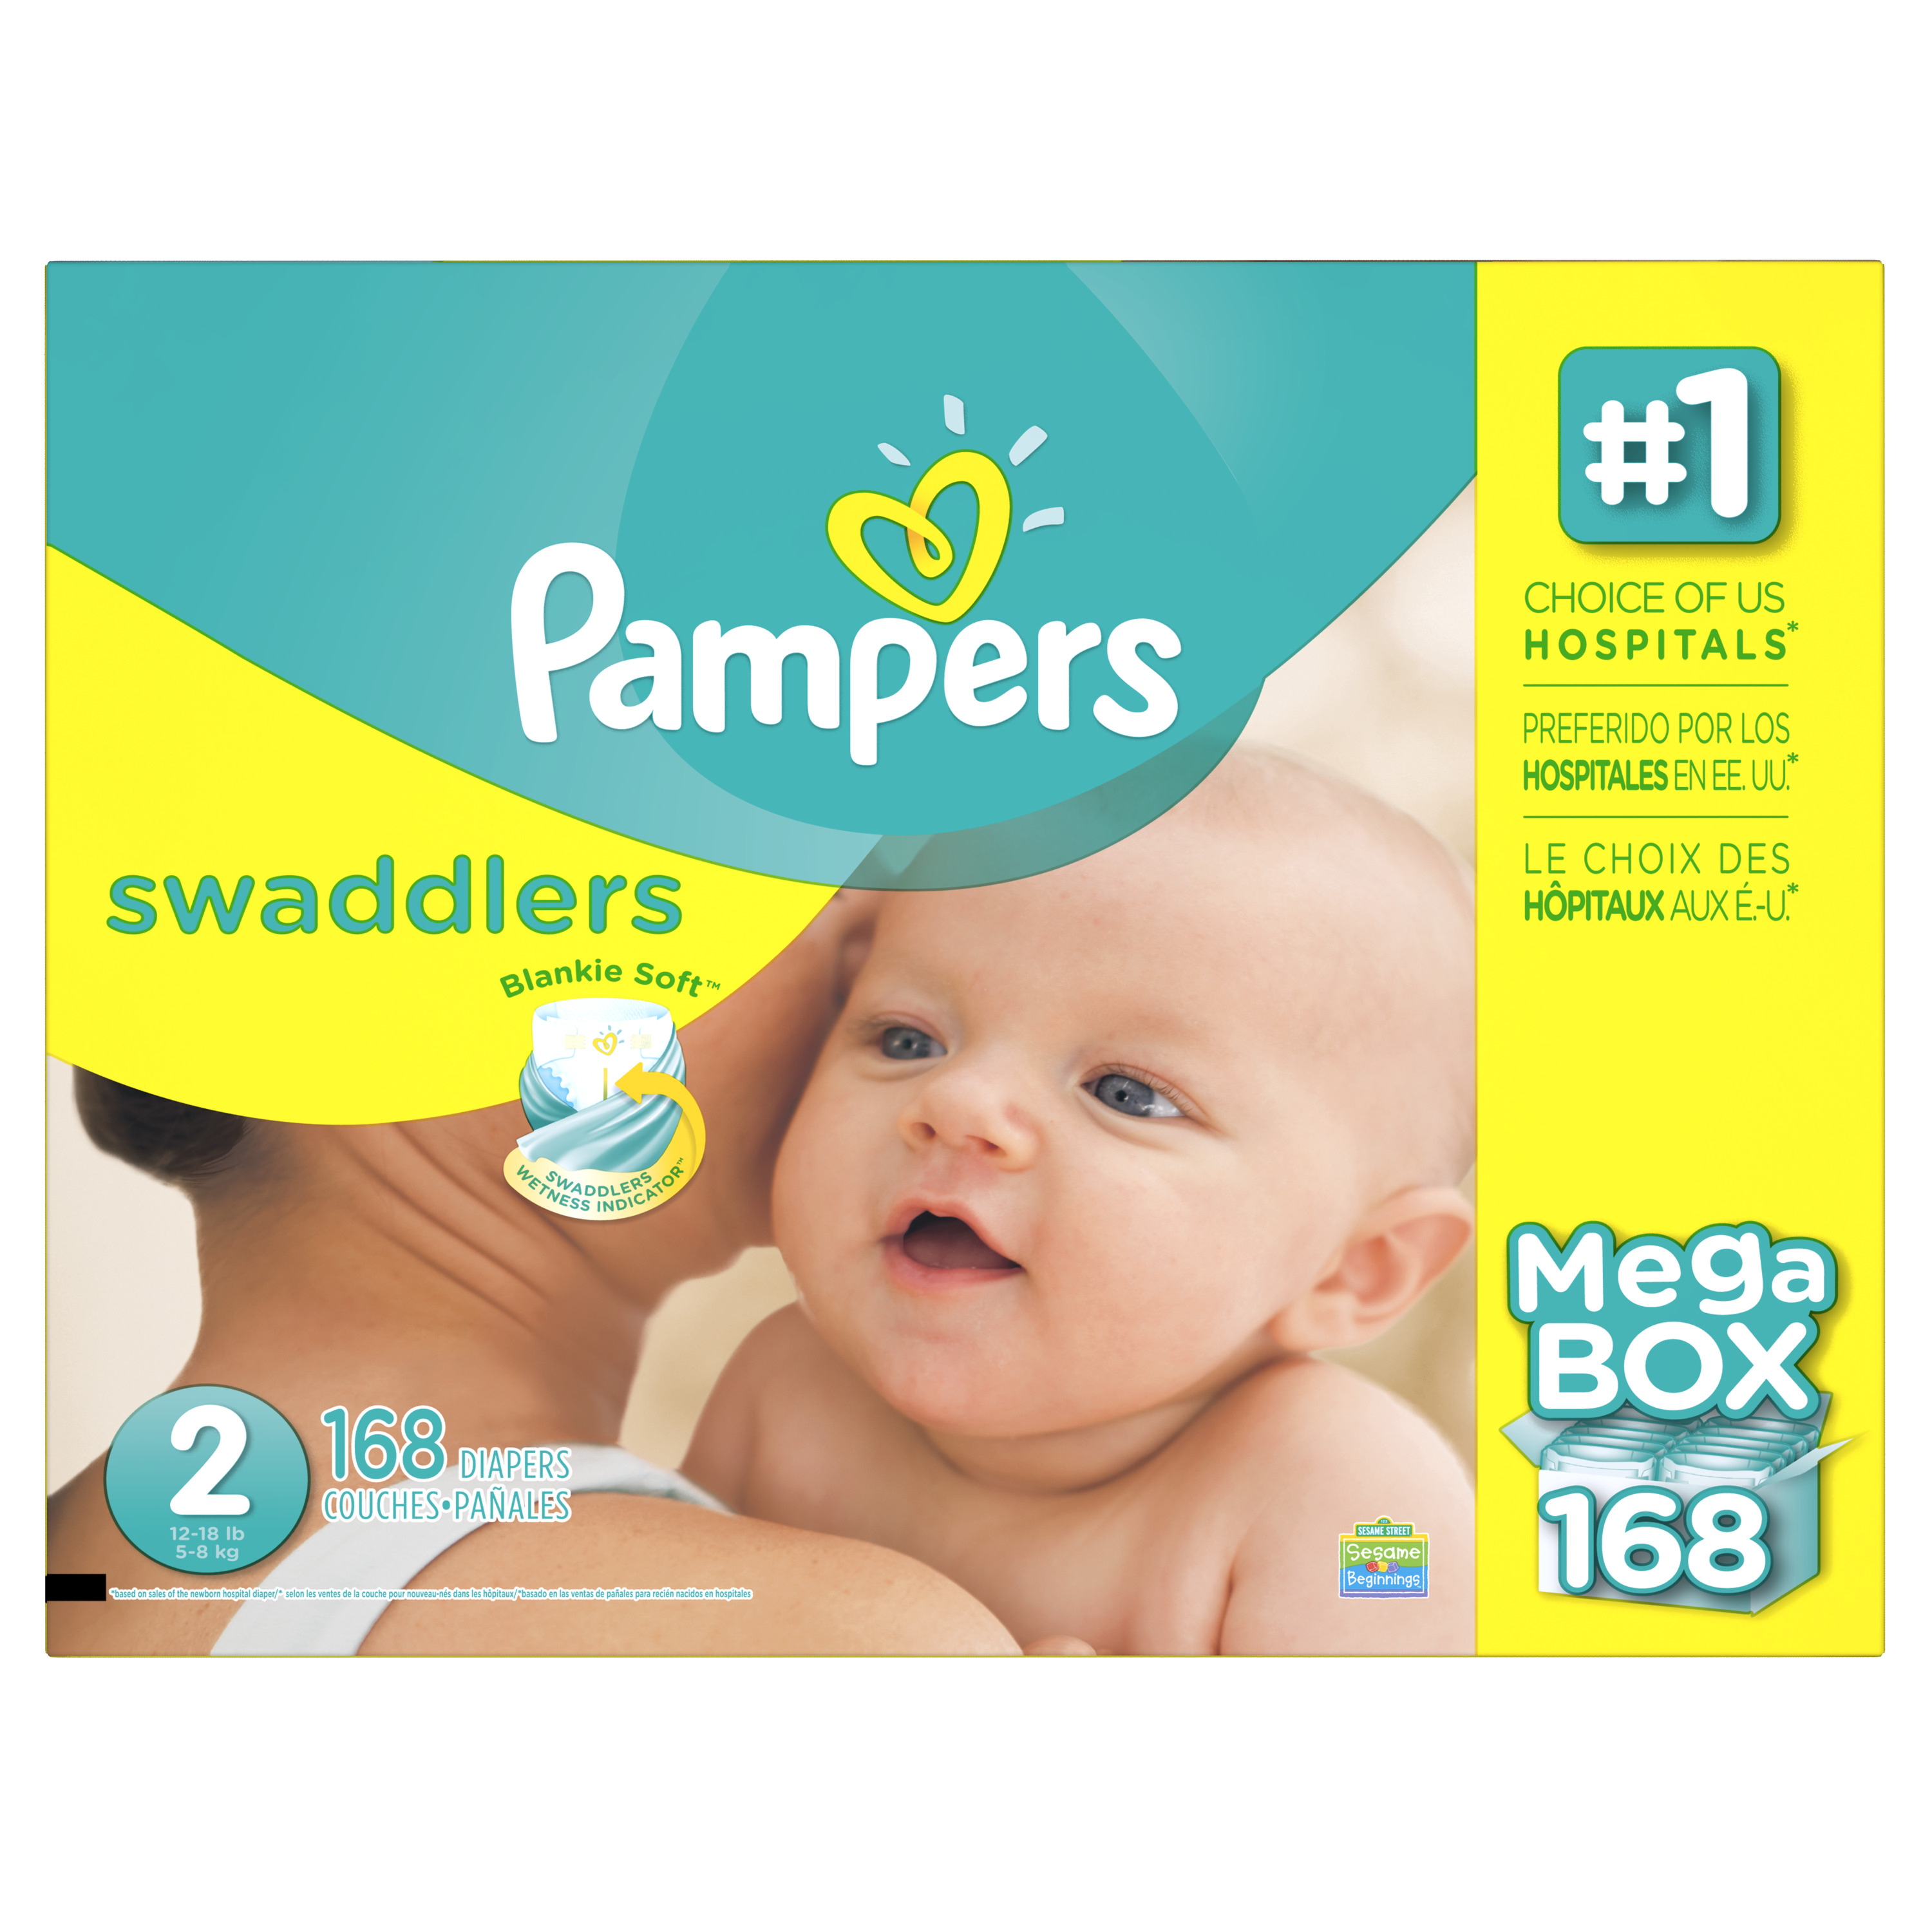 Product of 'Pampers' Swaddlers Size 2 Diapers; 168 ct. Bulk Qty, Free Shipping Comfortable, Soft, No Leaking &... by Branded Diapers